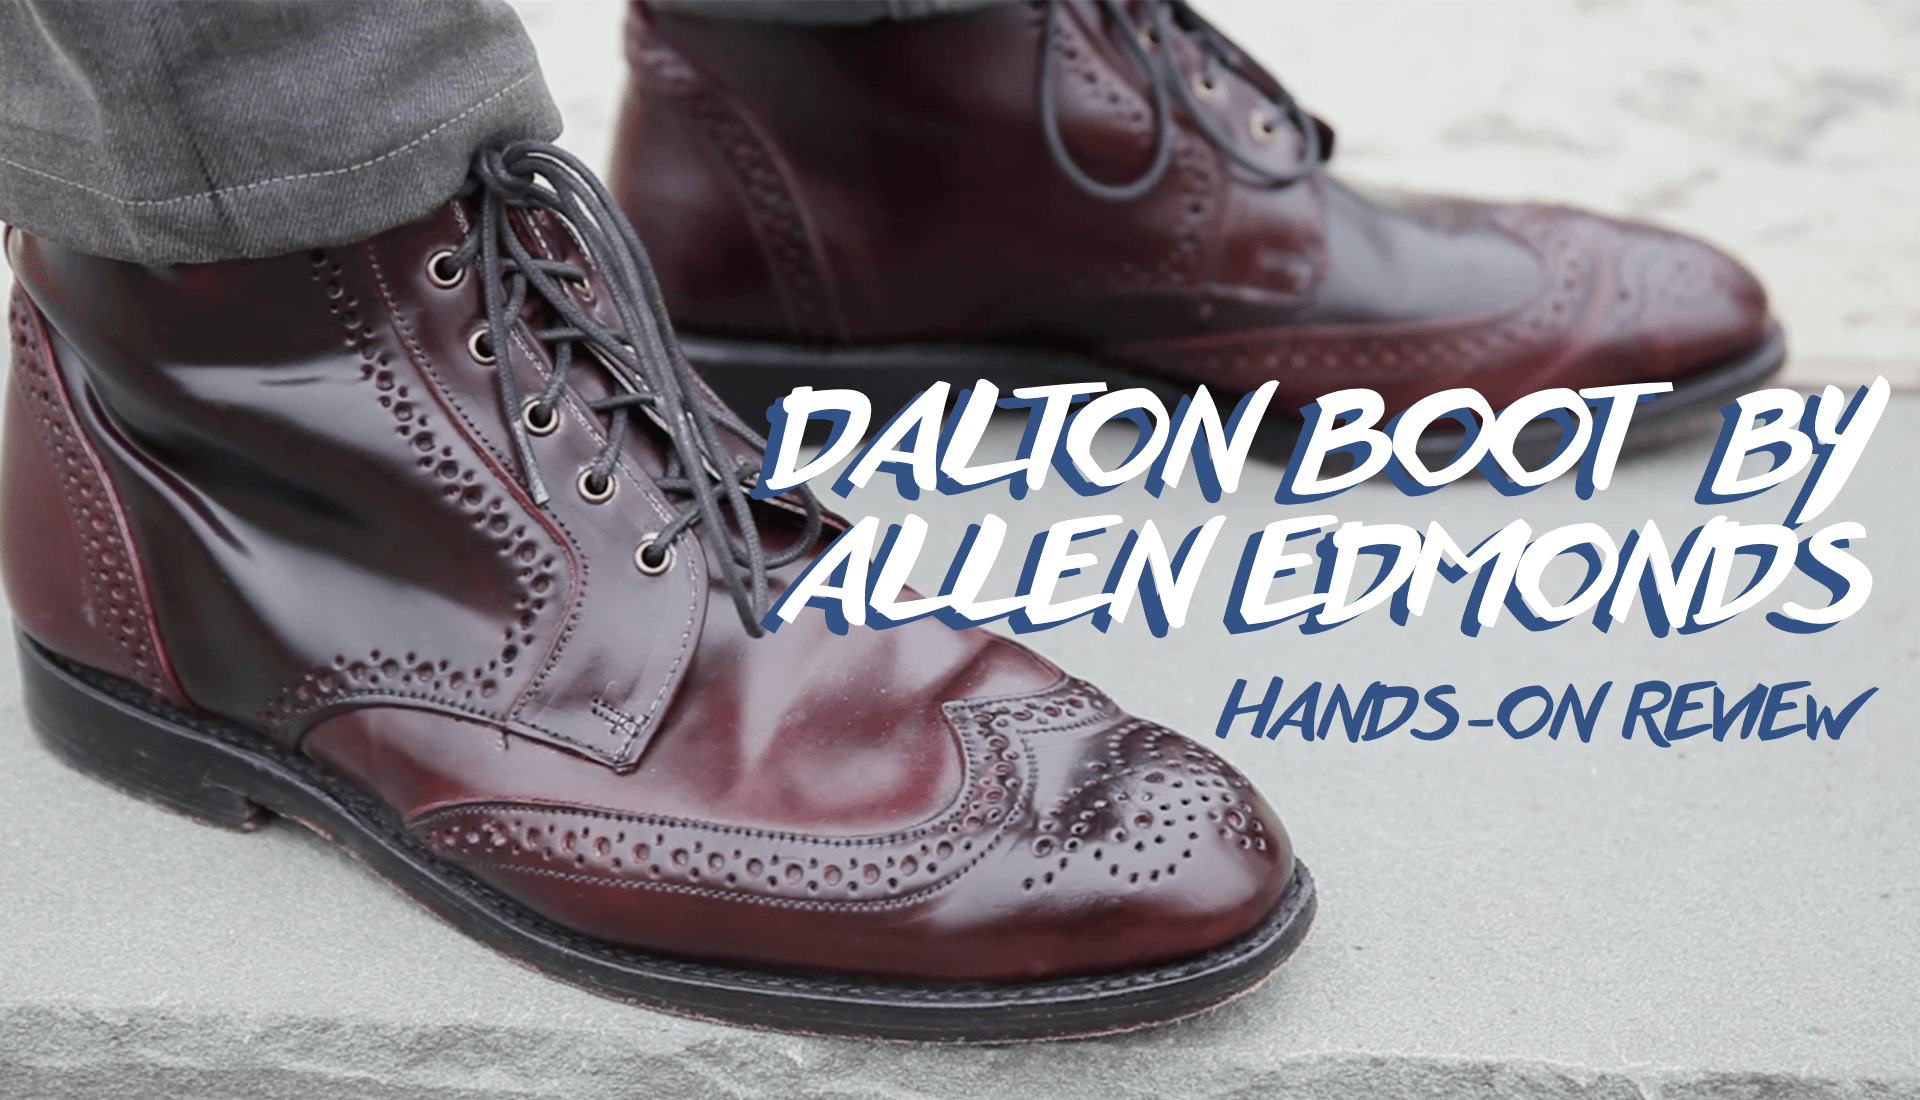 Off Topic: Allen Edmonds Dalton Boot in Shell Cordovan Review